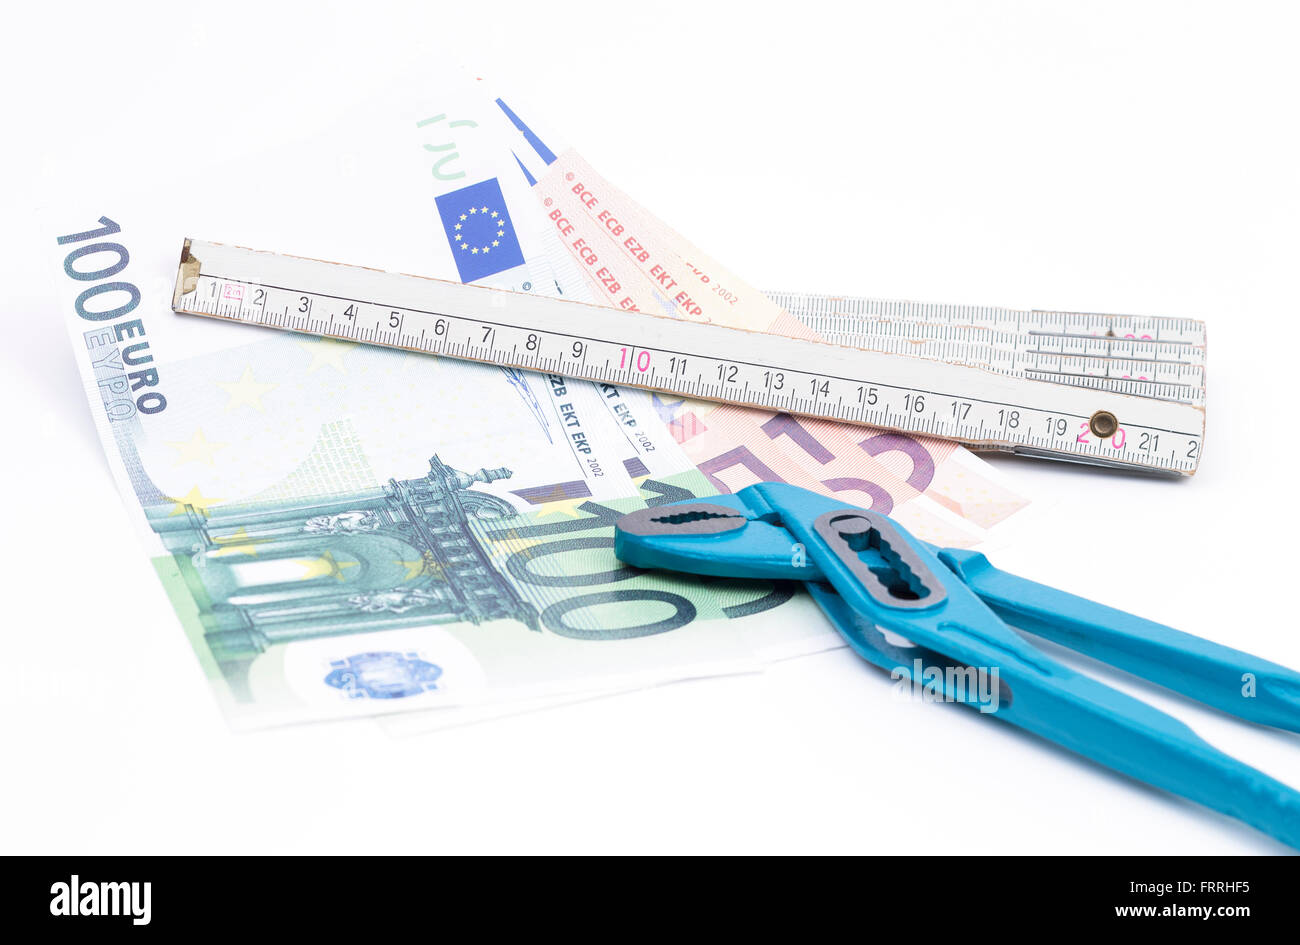 Image shows a yardstick with money and pliers isolated on white - Stock Image